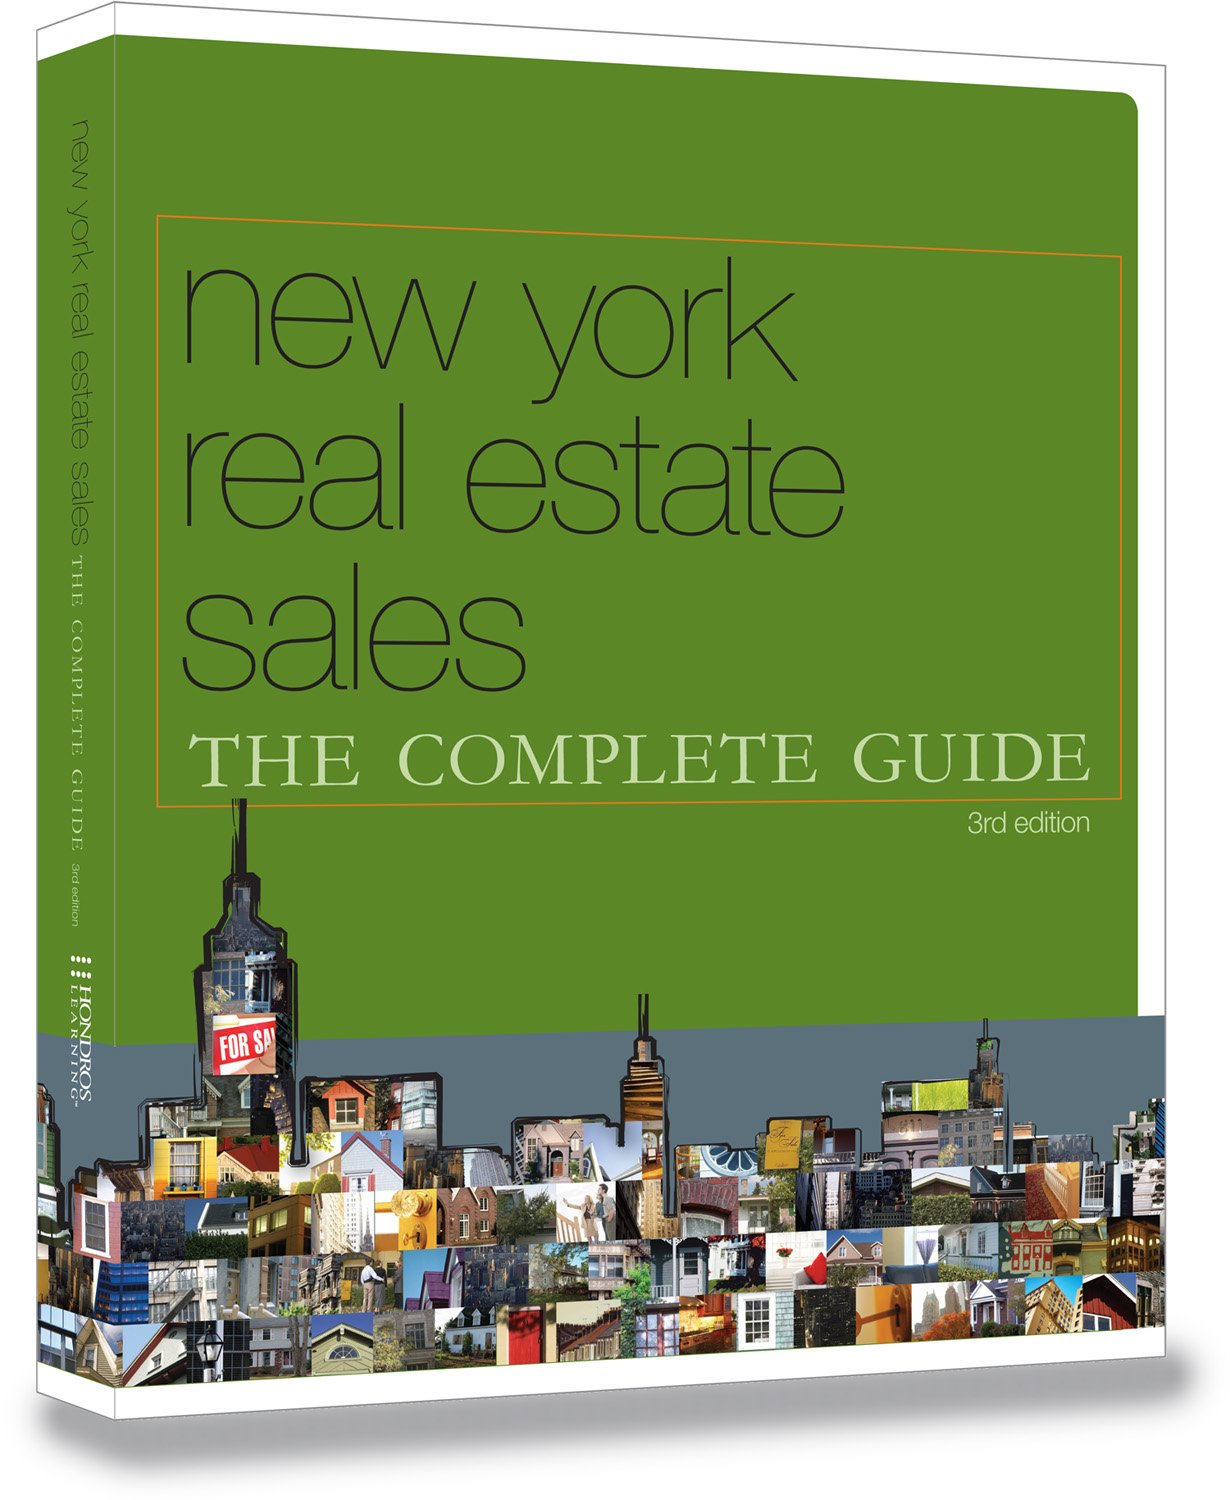 Download New York Real Estate Sales: The Complete Guide, 3rd ed. PDF